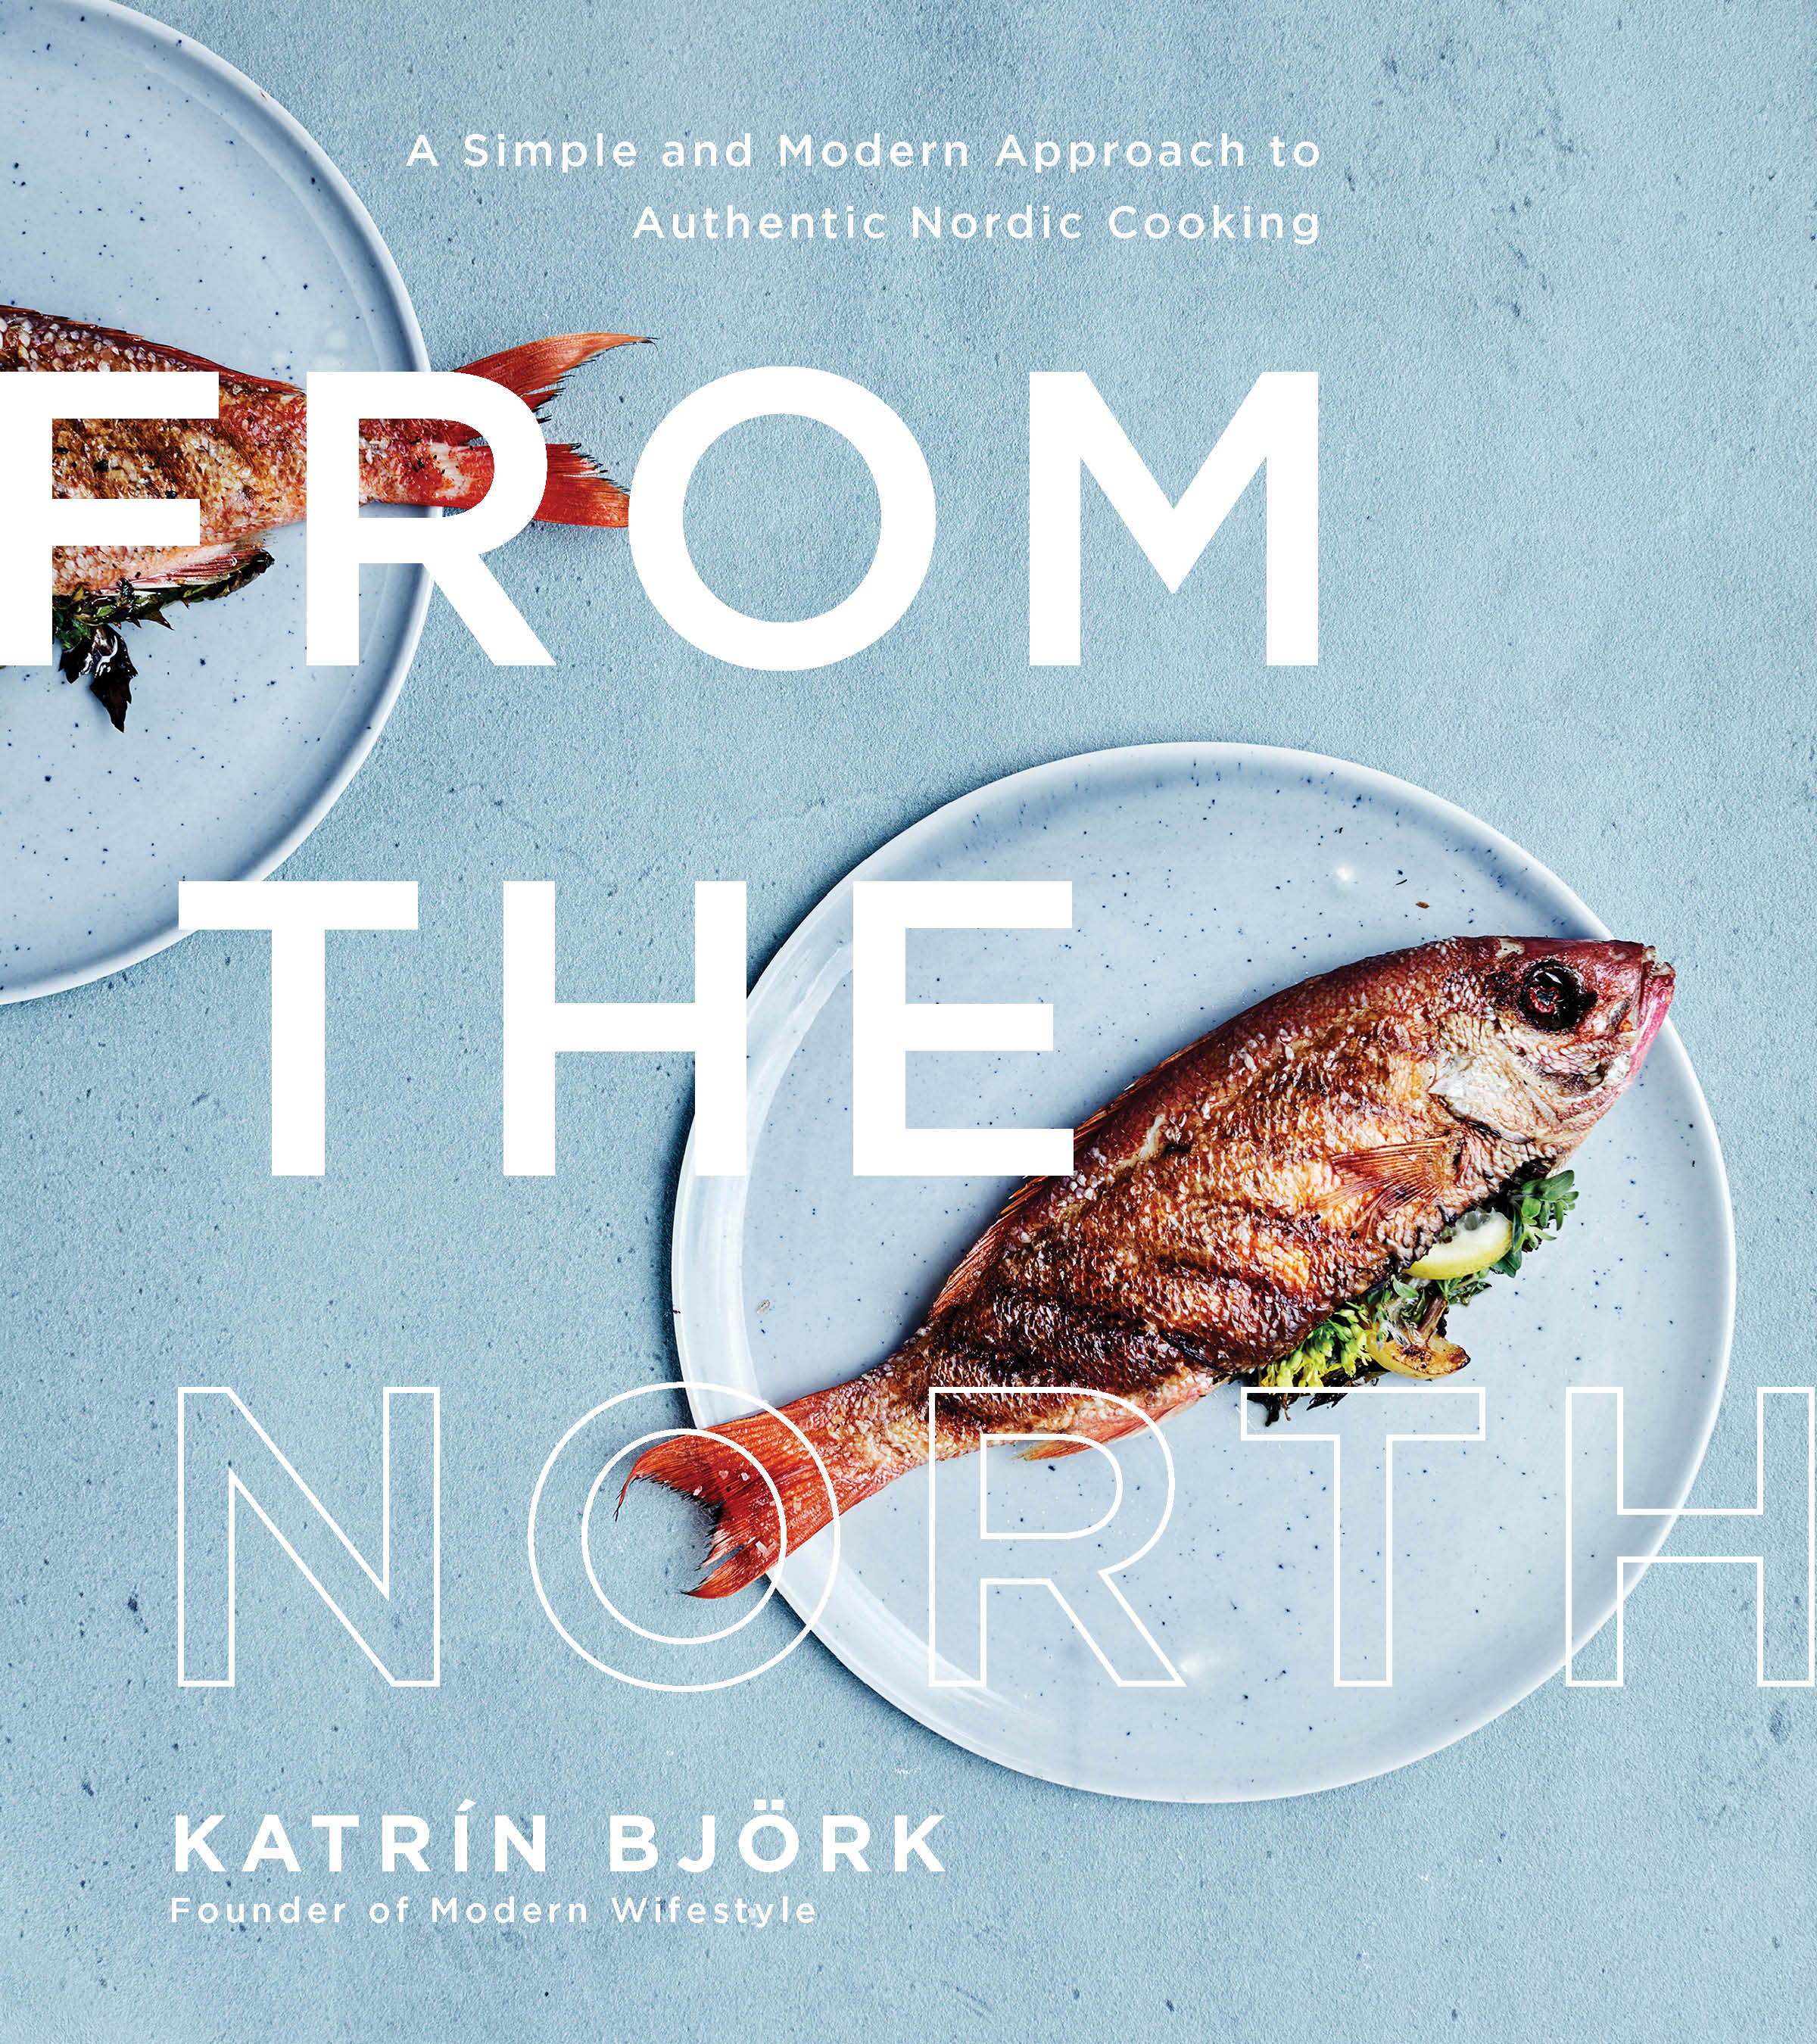 Buy the book - In From the North, Katrín Björk celebrates the flavors of her childhood with fresh ingredients and unique twists. Her modern techniques make traditional Nordic cooking simple and approachable, no matter how far south your kitchen.Buy from AmazonBuy from Barnes & NobleBuy from IndieboundBuy from Books-A-Million